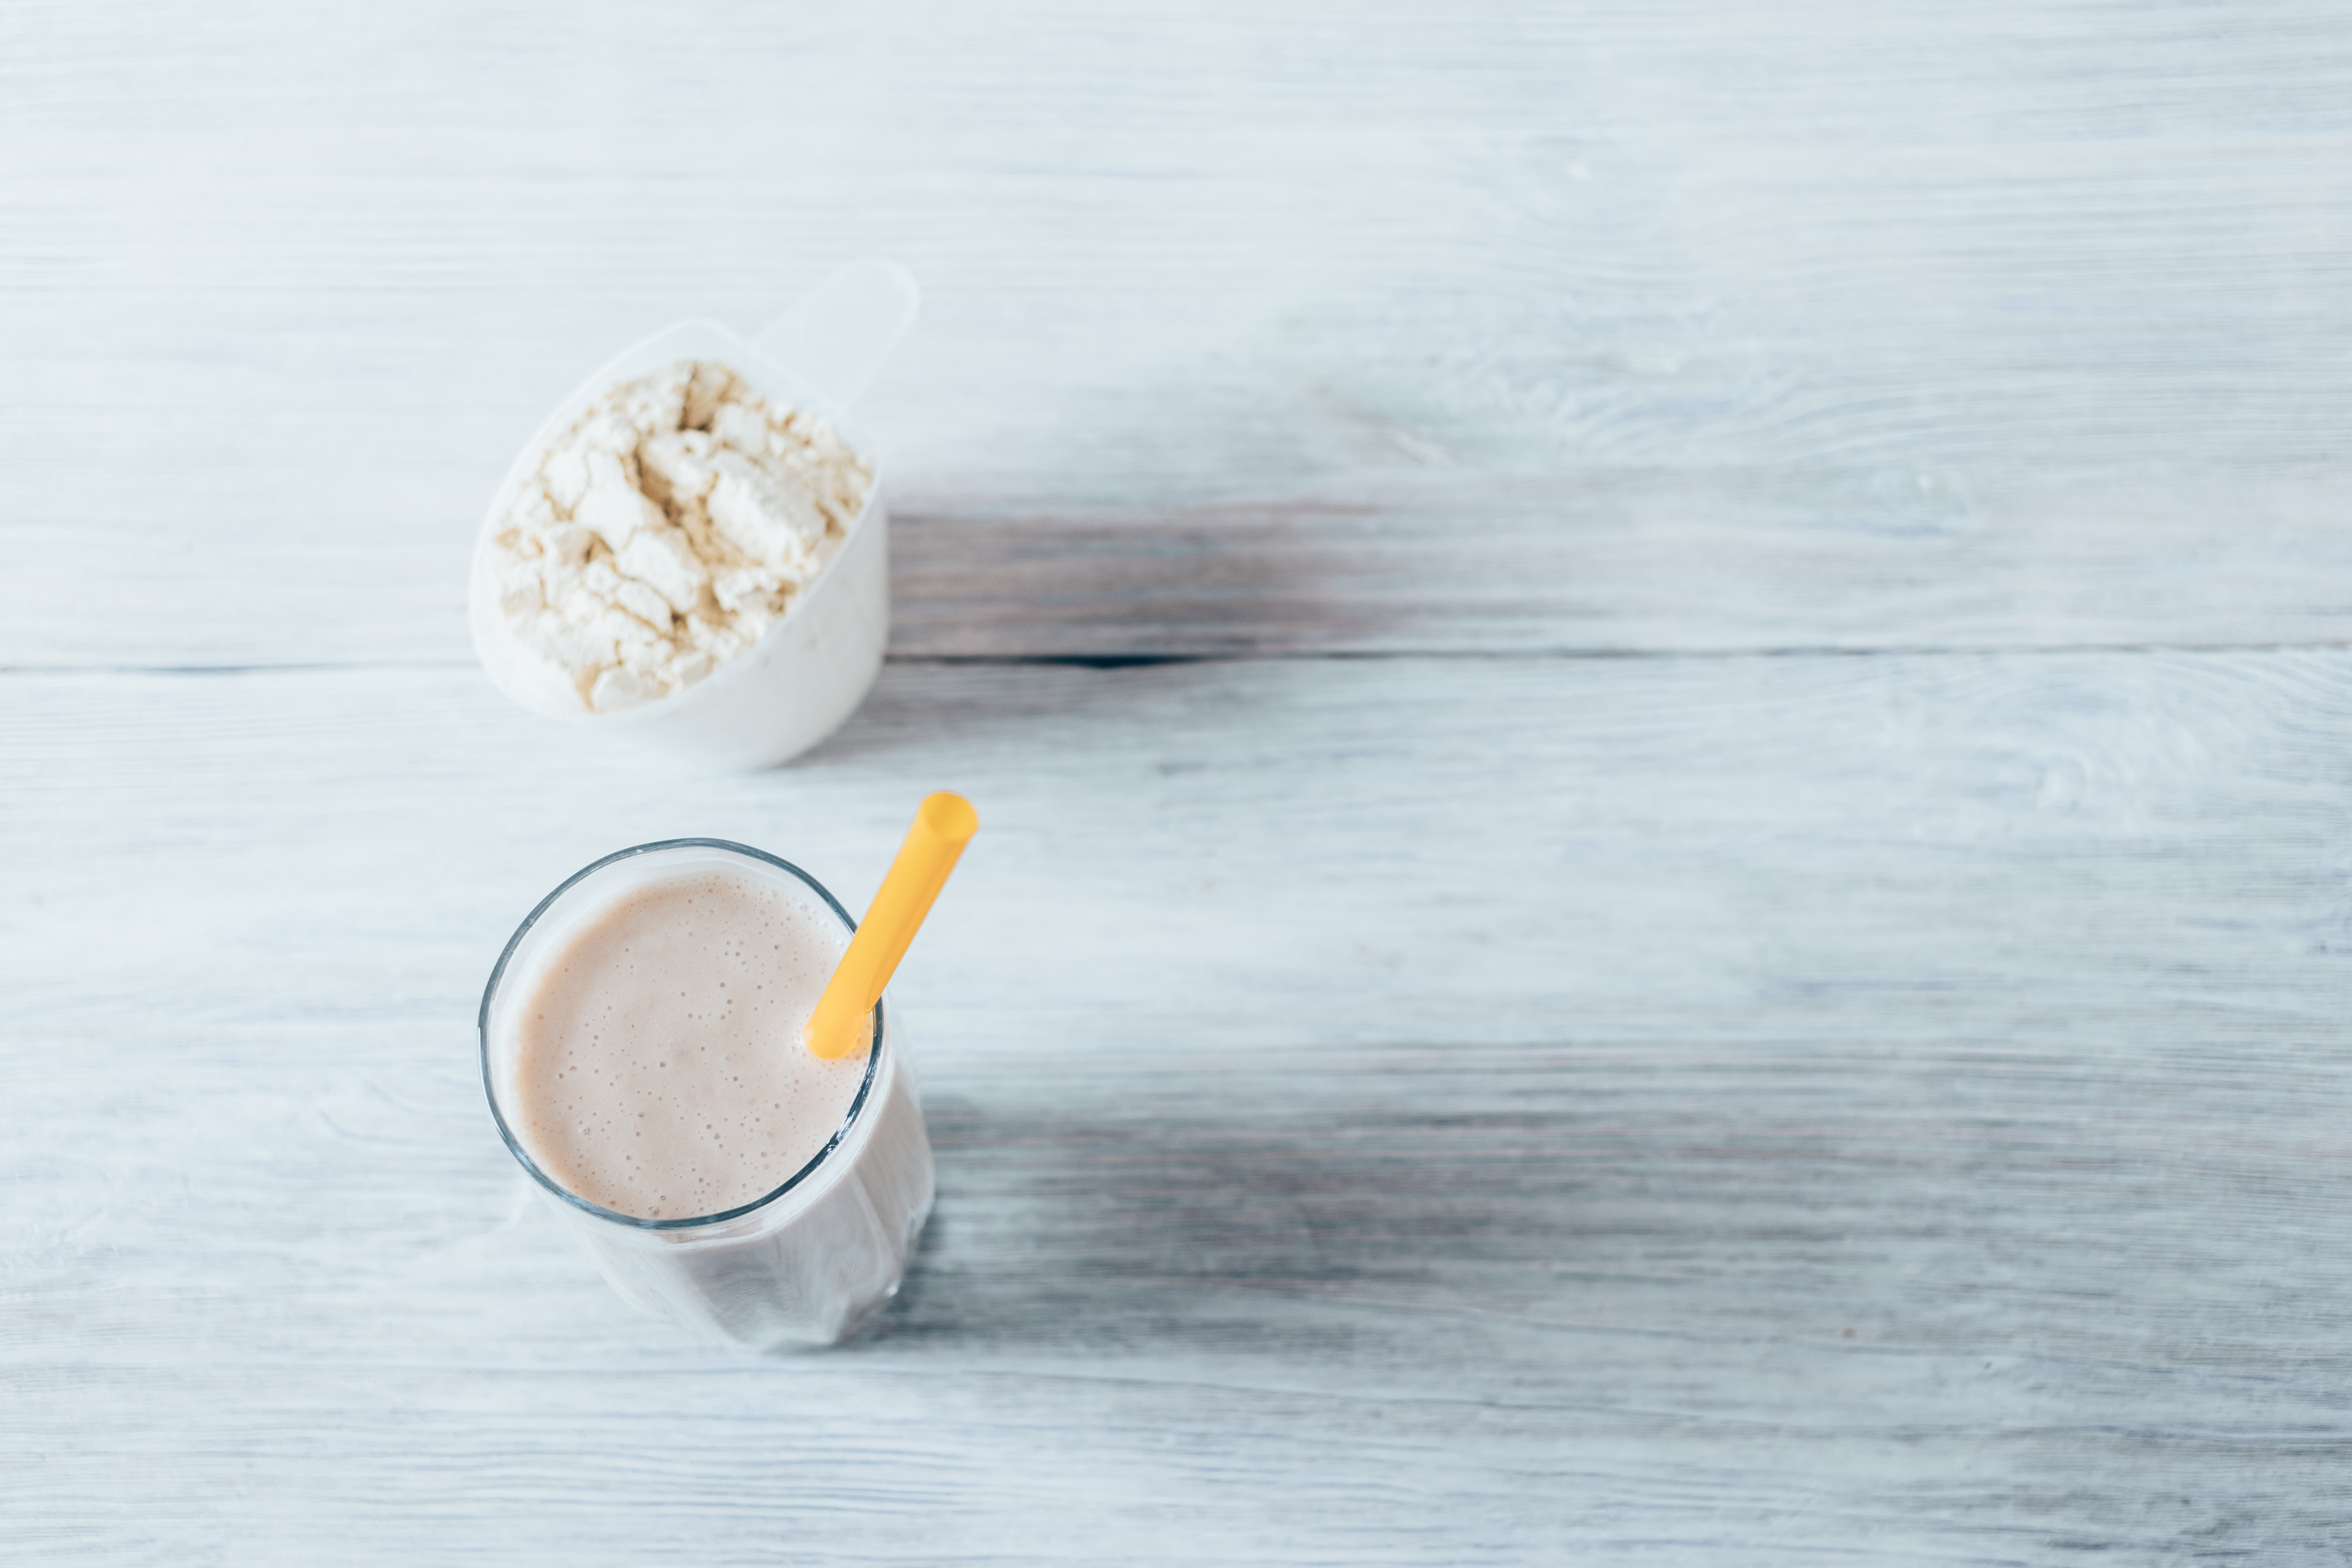 ice cream and milk on counter - JConnelly Blog - Soylent Innovation in Eating or Ingenious Marketing